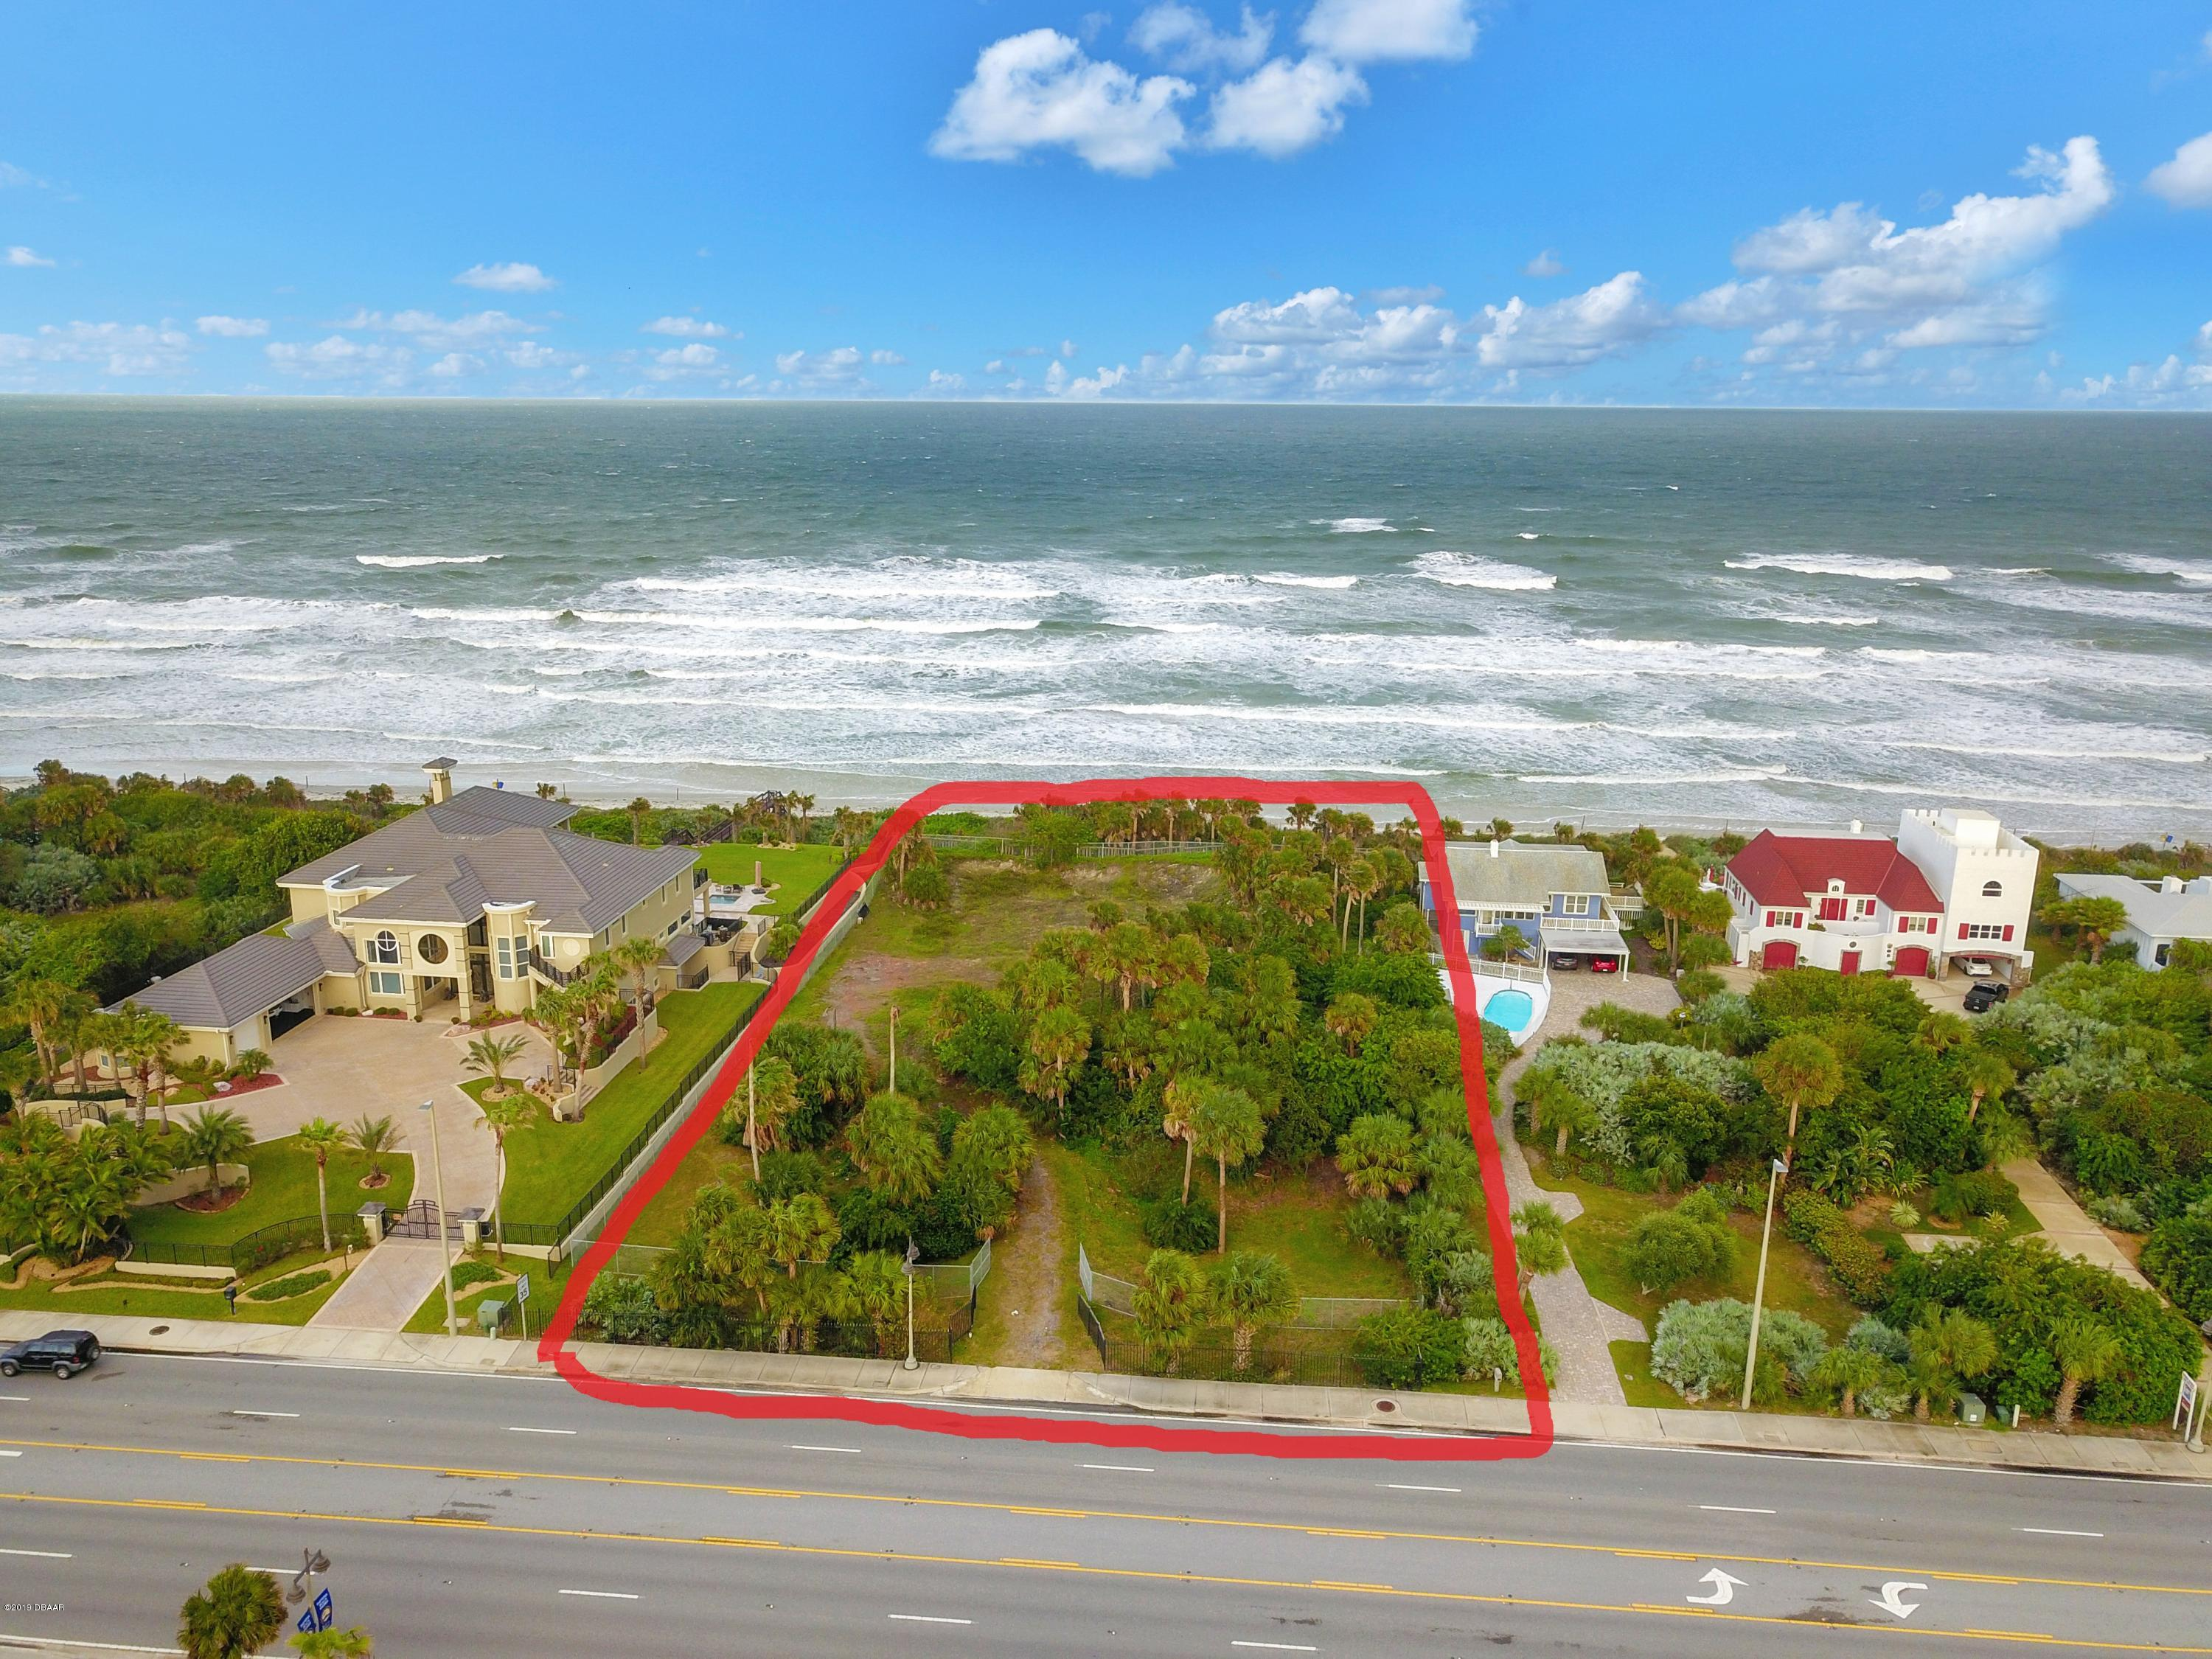 2825 S Atlantic Ave, Daytona Beach Shores, Florida 0 Bedroom as one of Homes & Land Real Estate